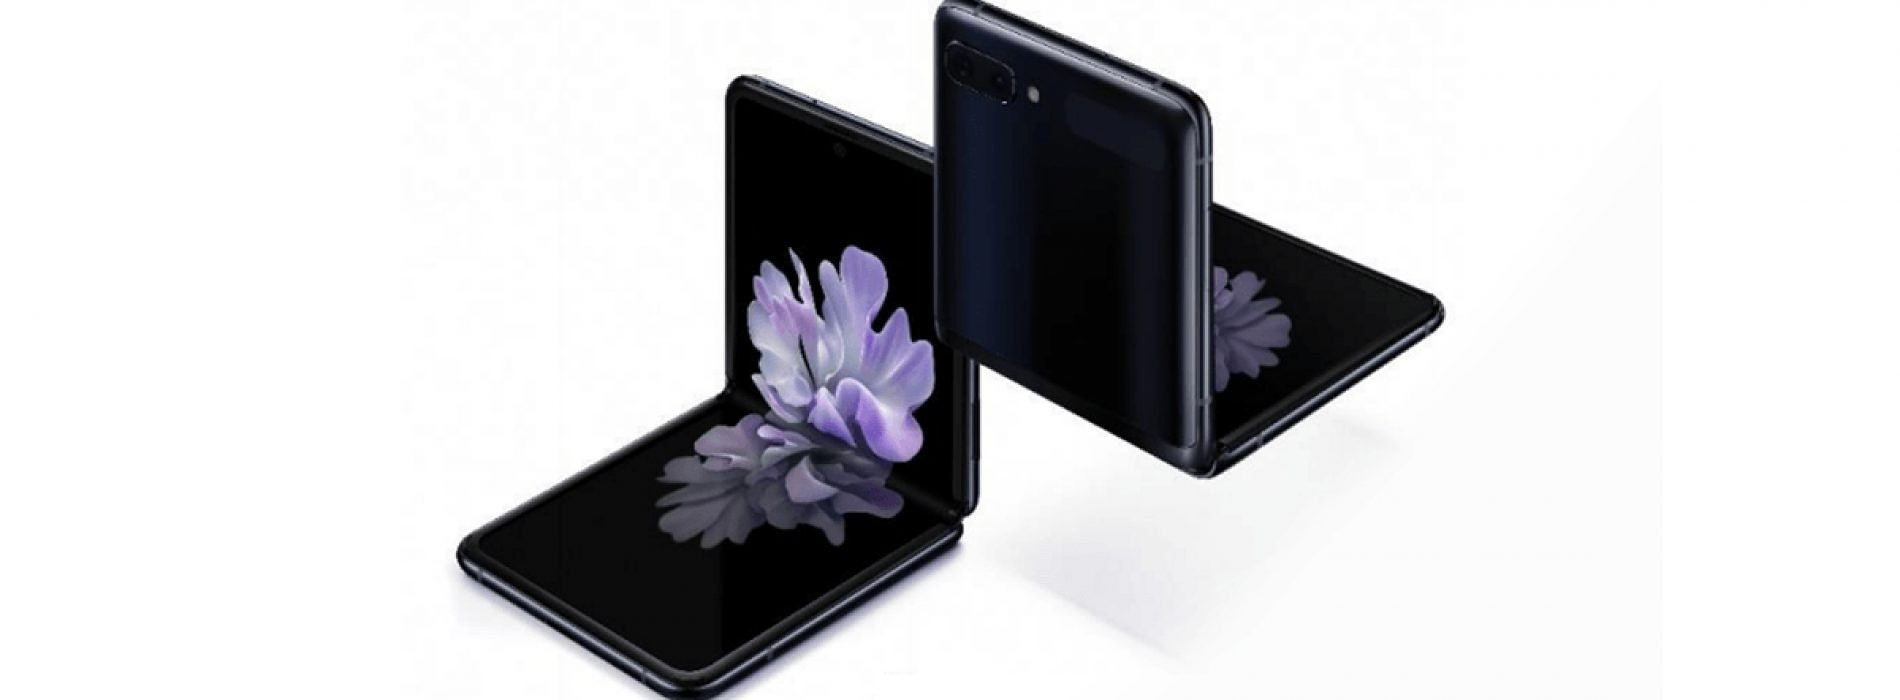 Samsung Galaxy Z Flip Spec And Render Leak Reveals Samsung S Clamshell Foldable Phone